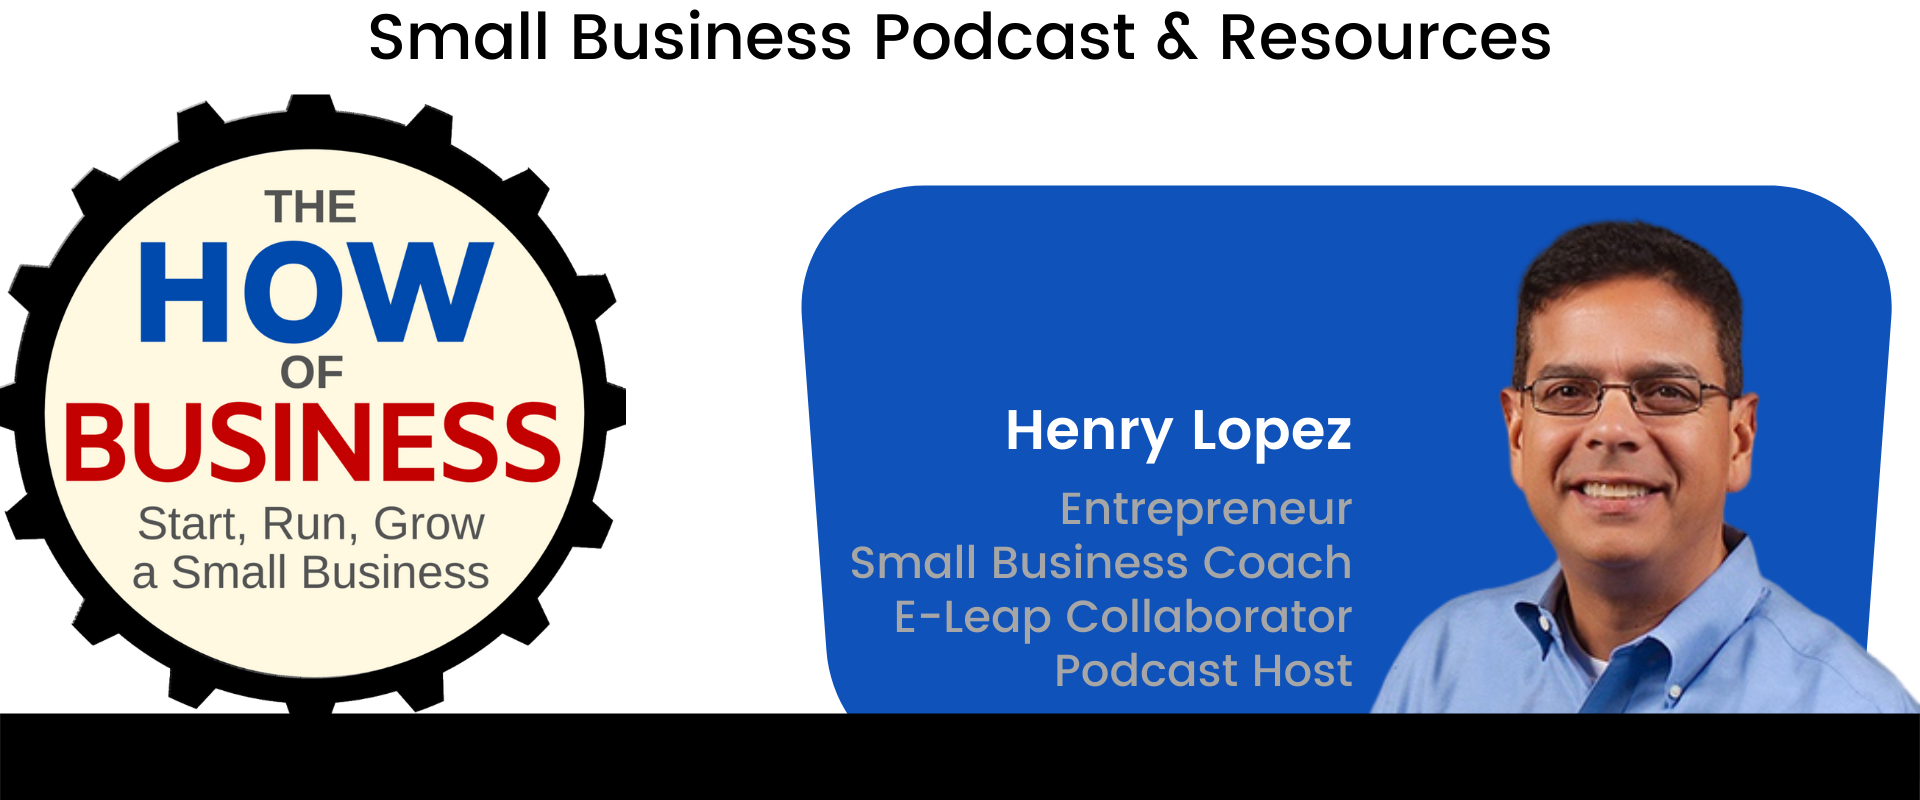 Henry Lopez - Small Business Podcast Host